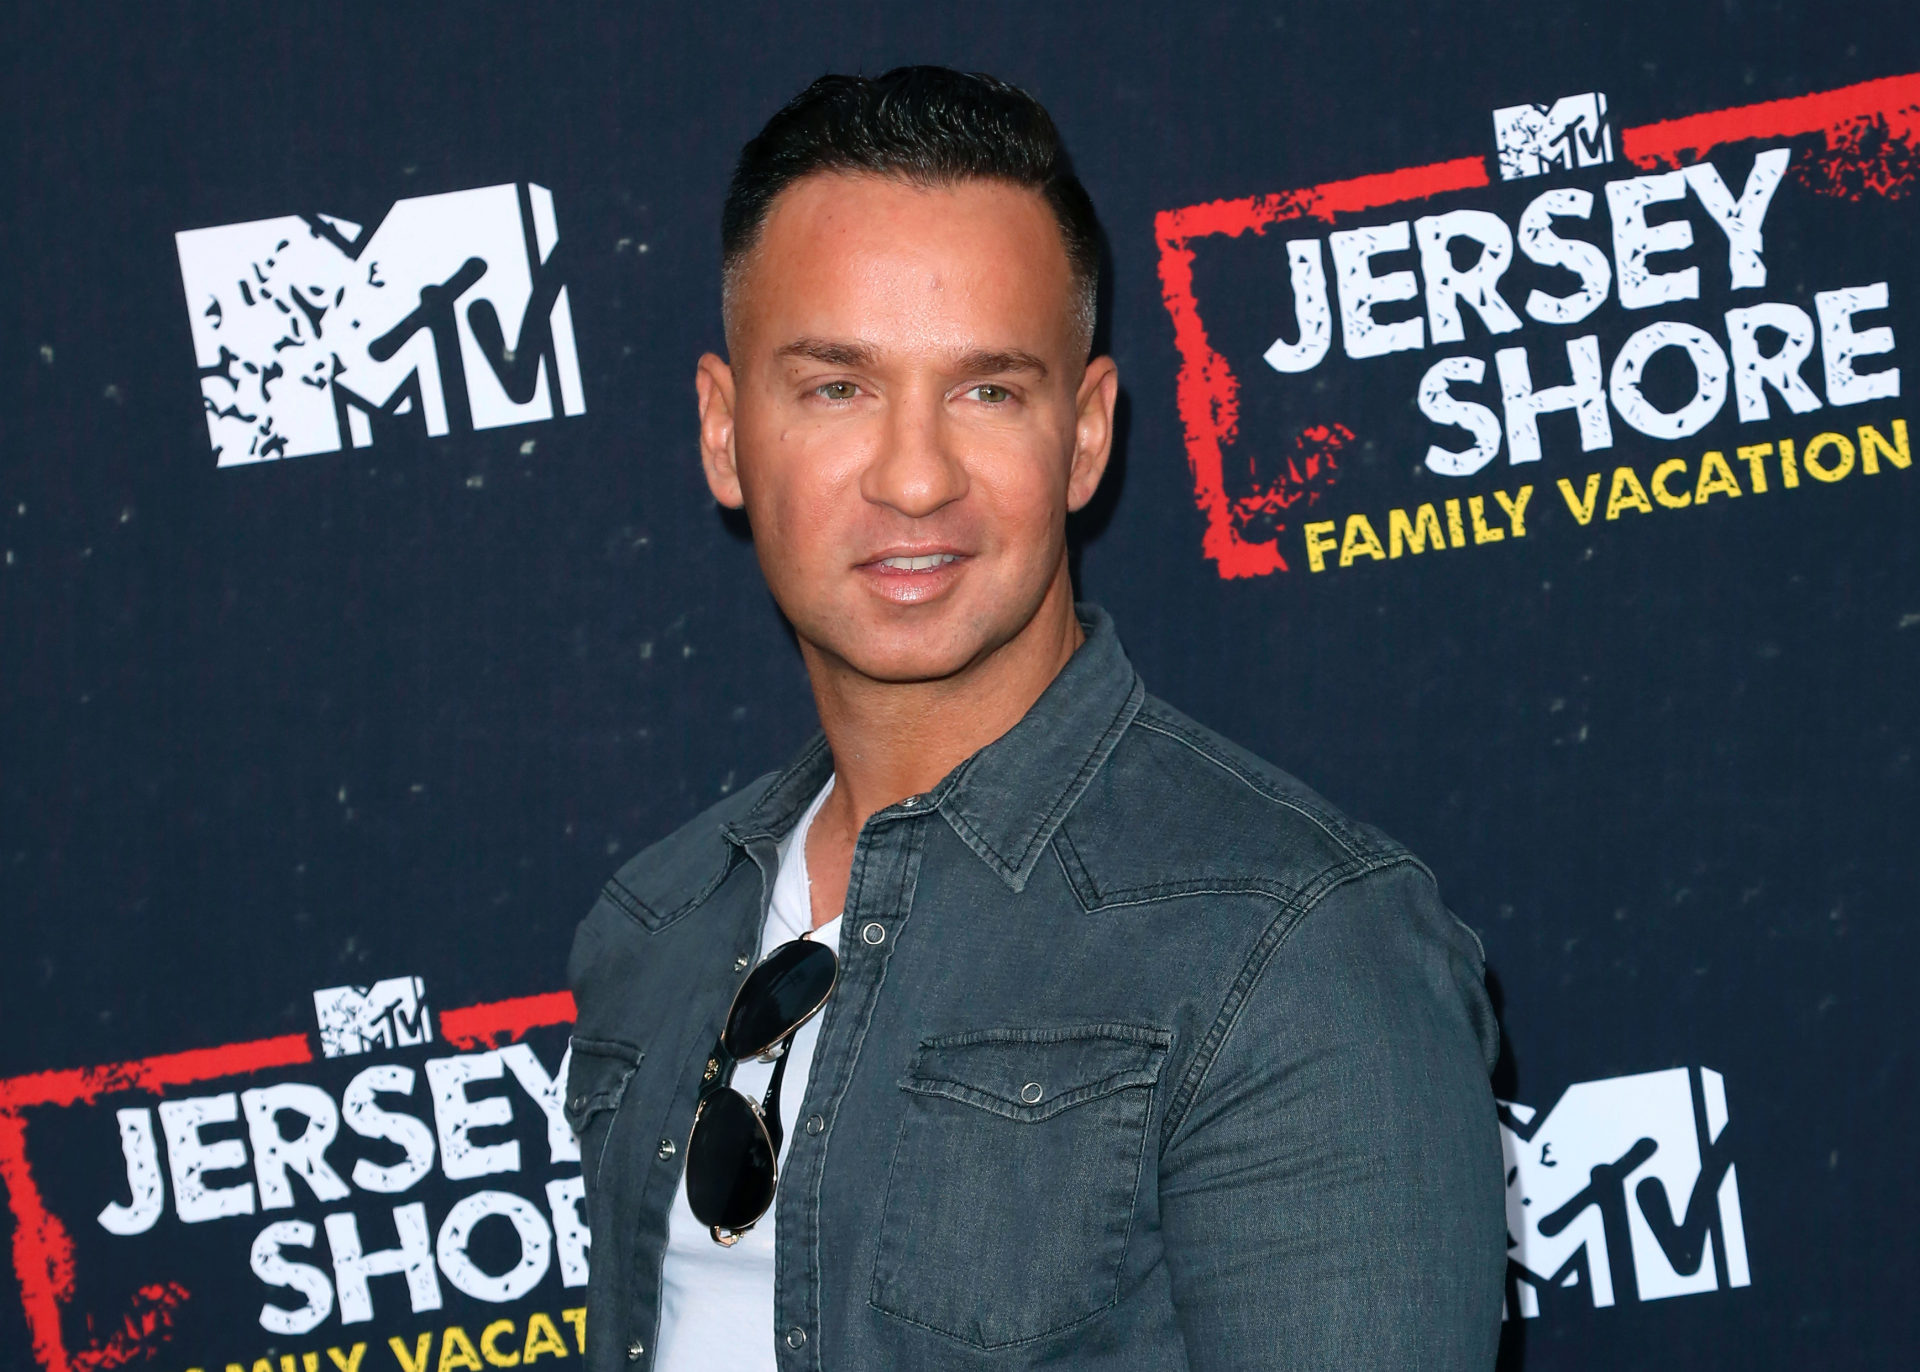 Mike 'The Situation' Sorrentino to be released from prison after 8-month sentence for tax evasion